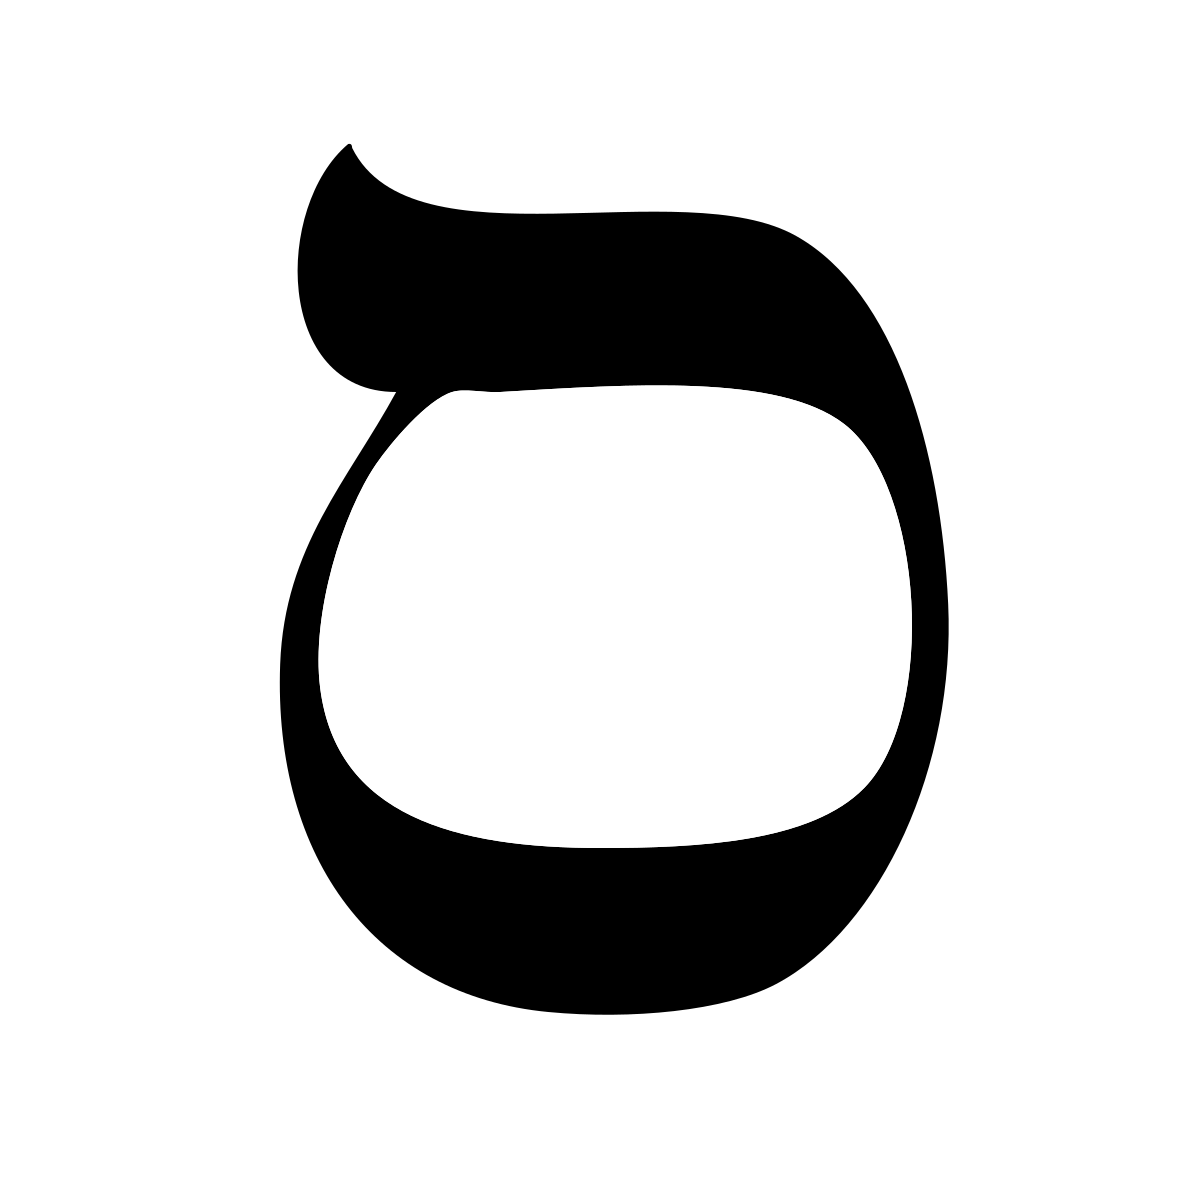 picture of the Hebrew letter Samech which is the logo of Sefaria. 22Lookup provides access to Sefaria's Talmud and Mishnah elucidations